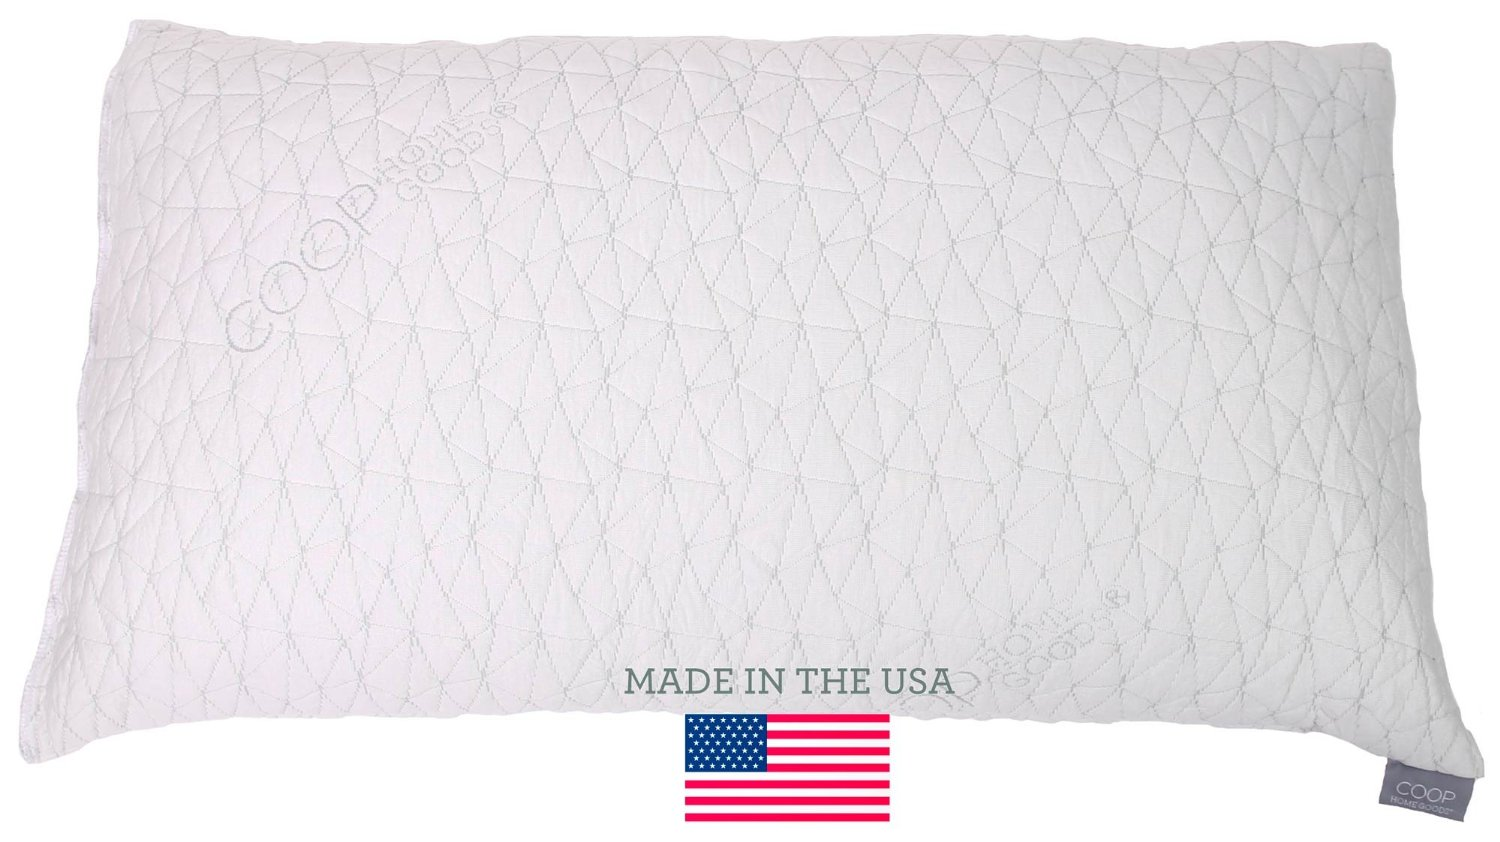 Shredded Memory Foam Pillow With Viscose Rayon Cover Derived From